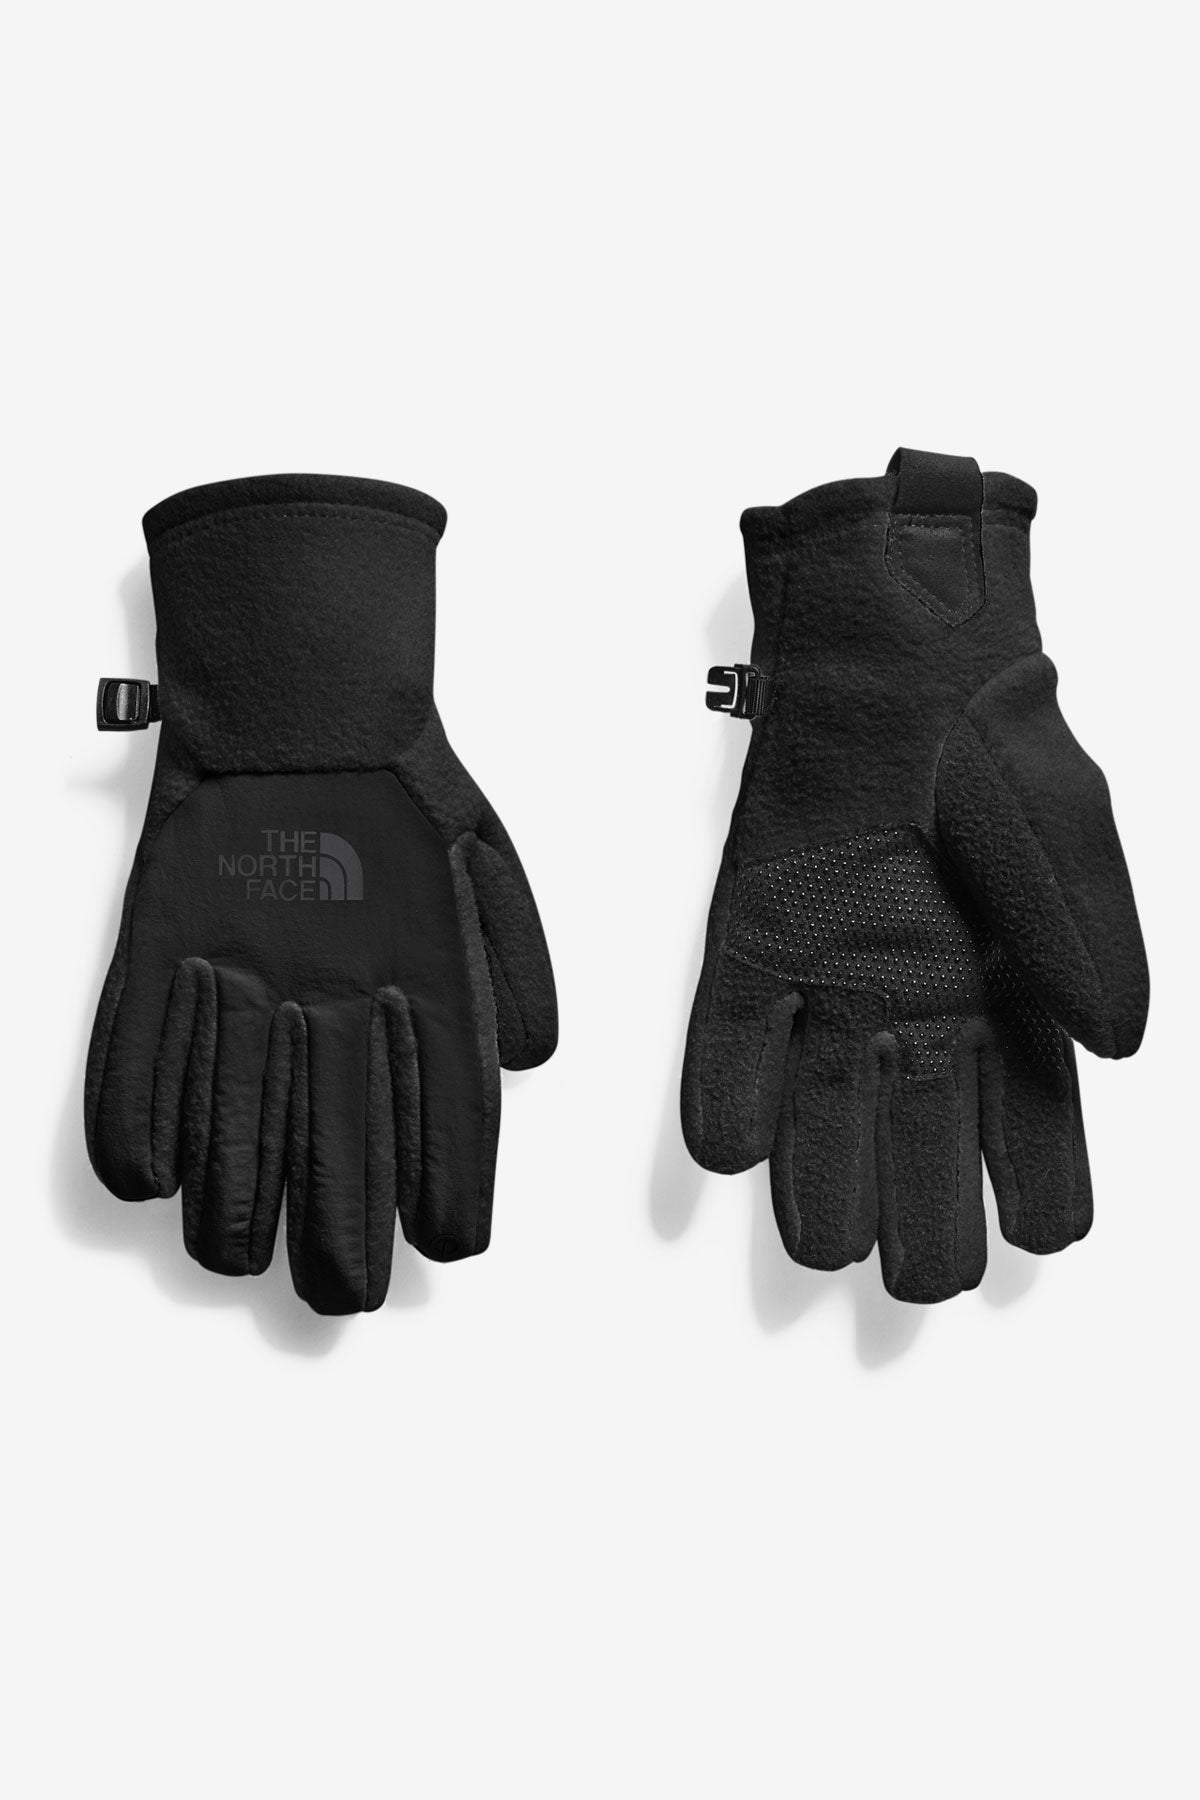 The North Face Youth Denali Etip Glove - Black